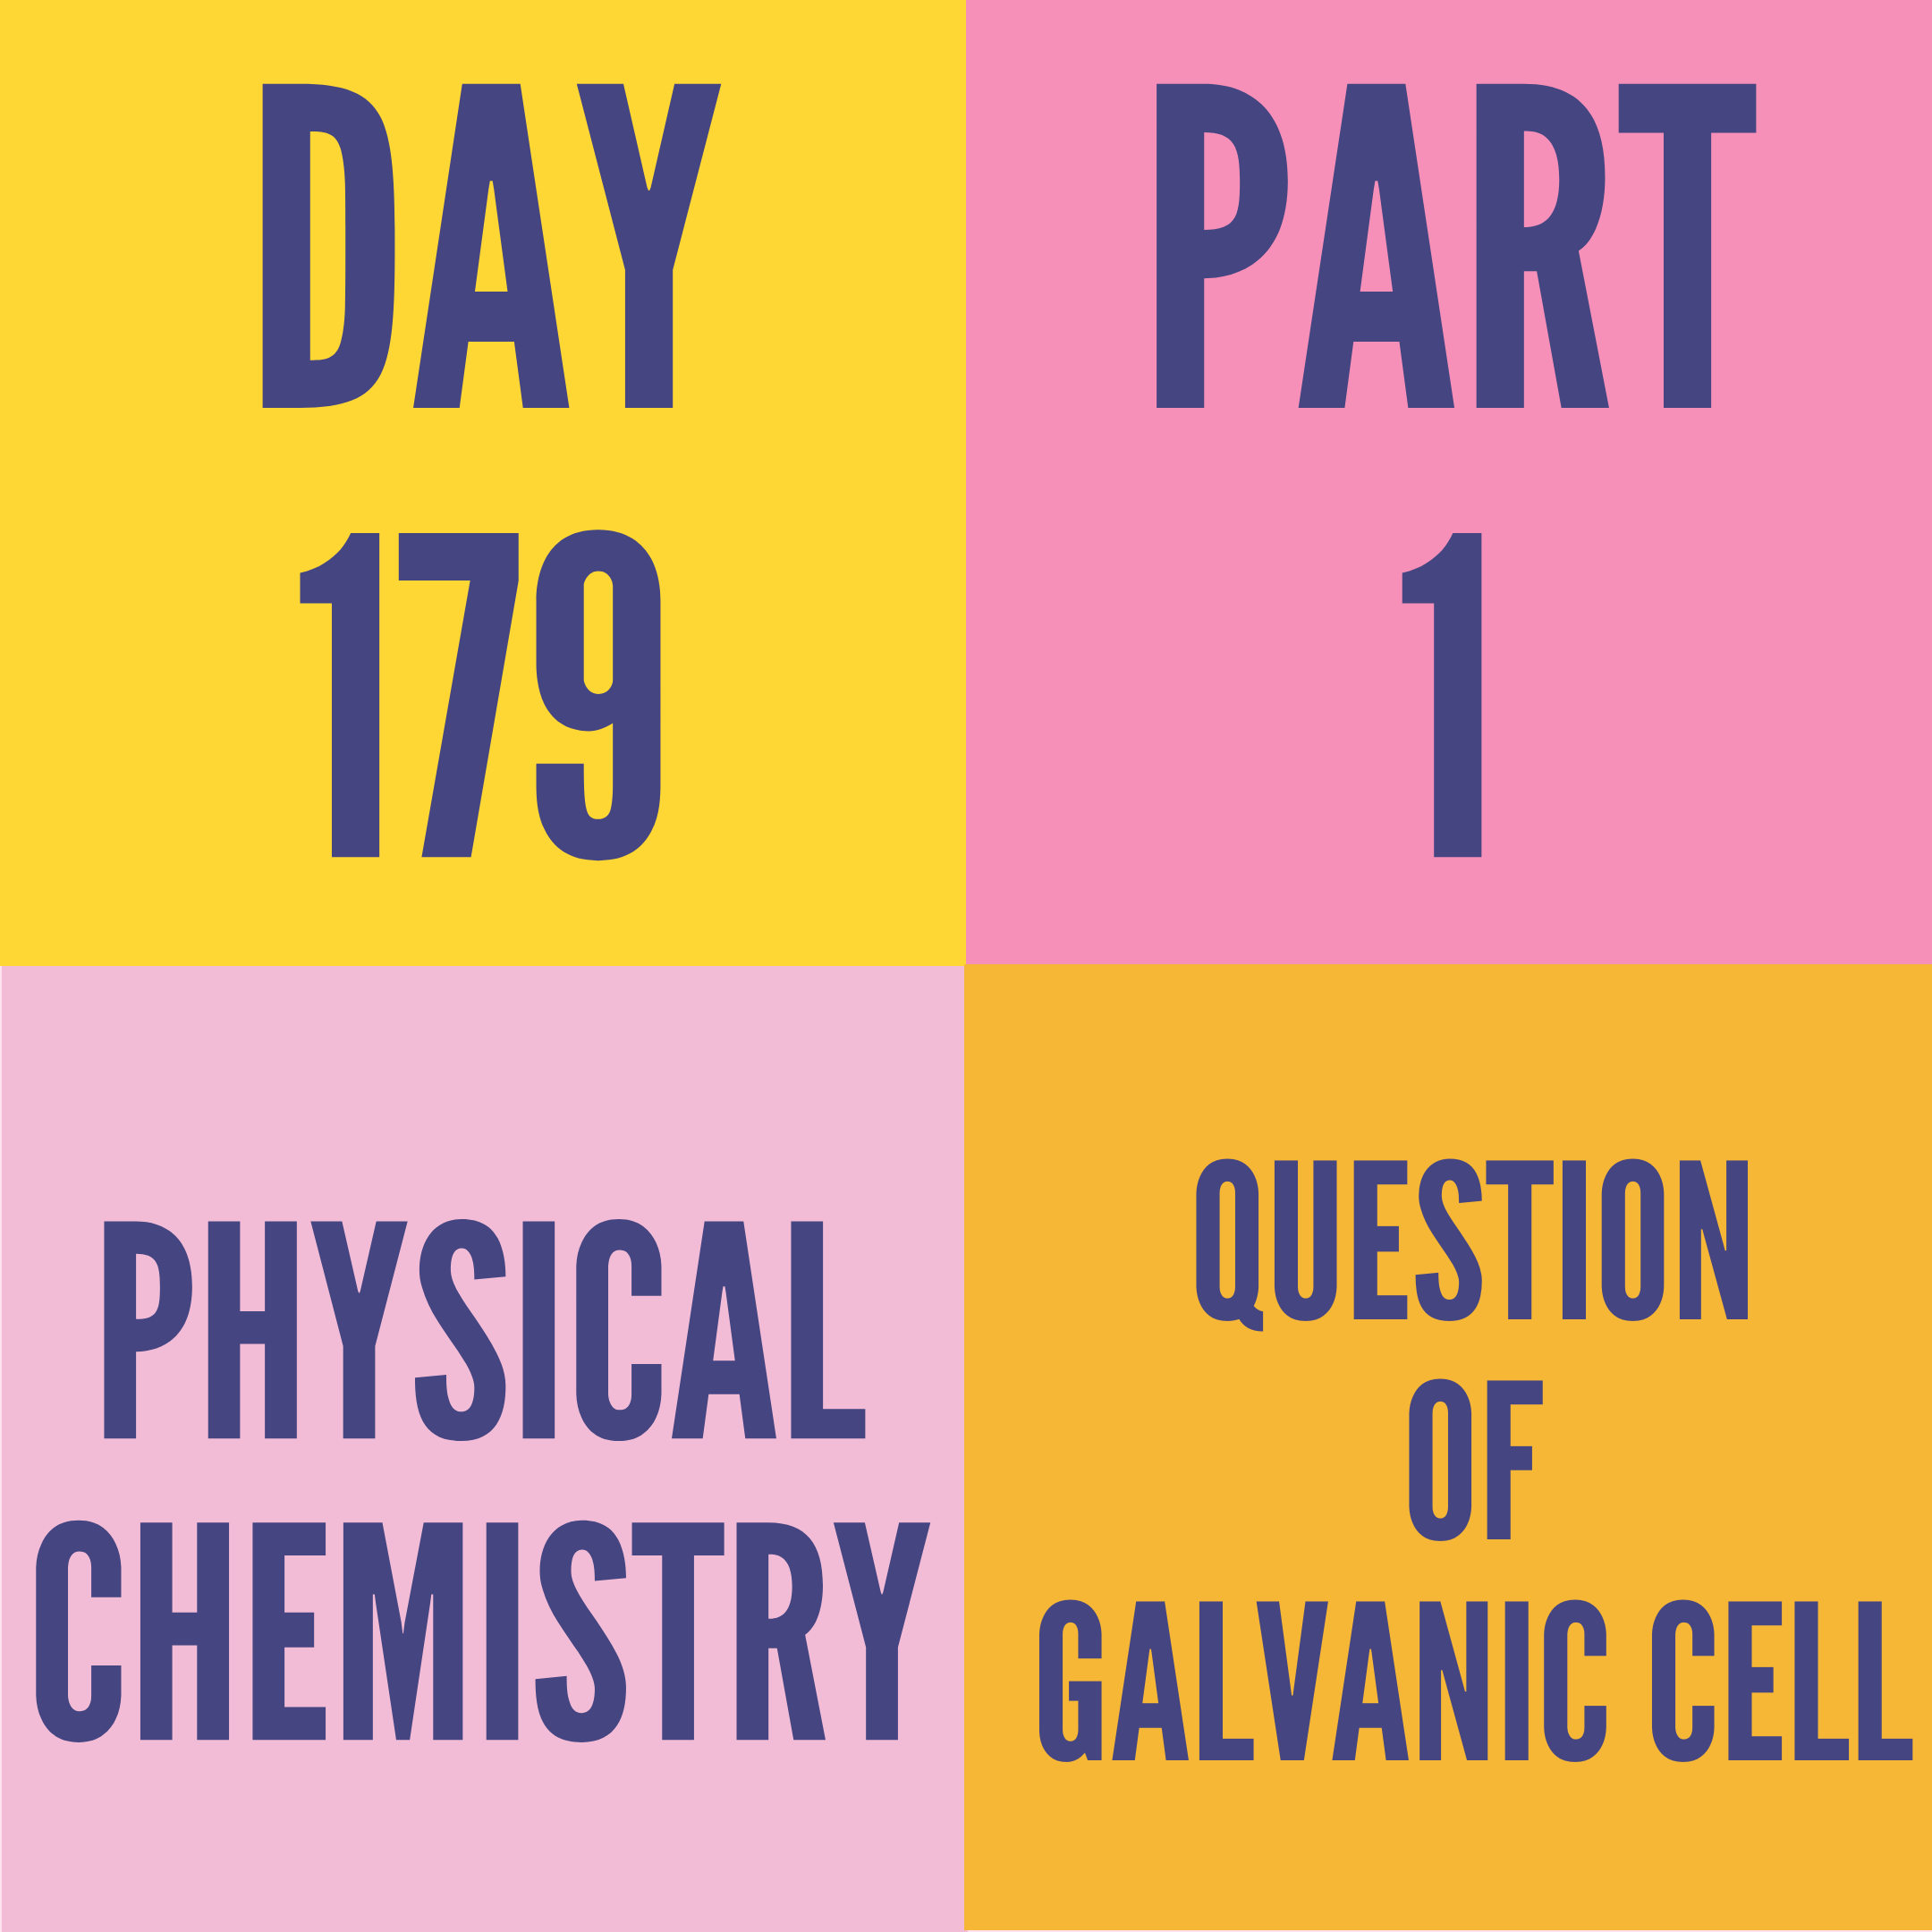 DAY-179 PART-1 QUESTION OF GALVANIC CELL